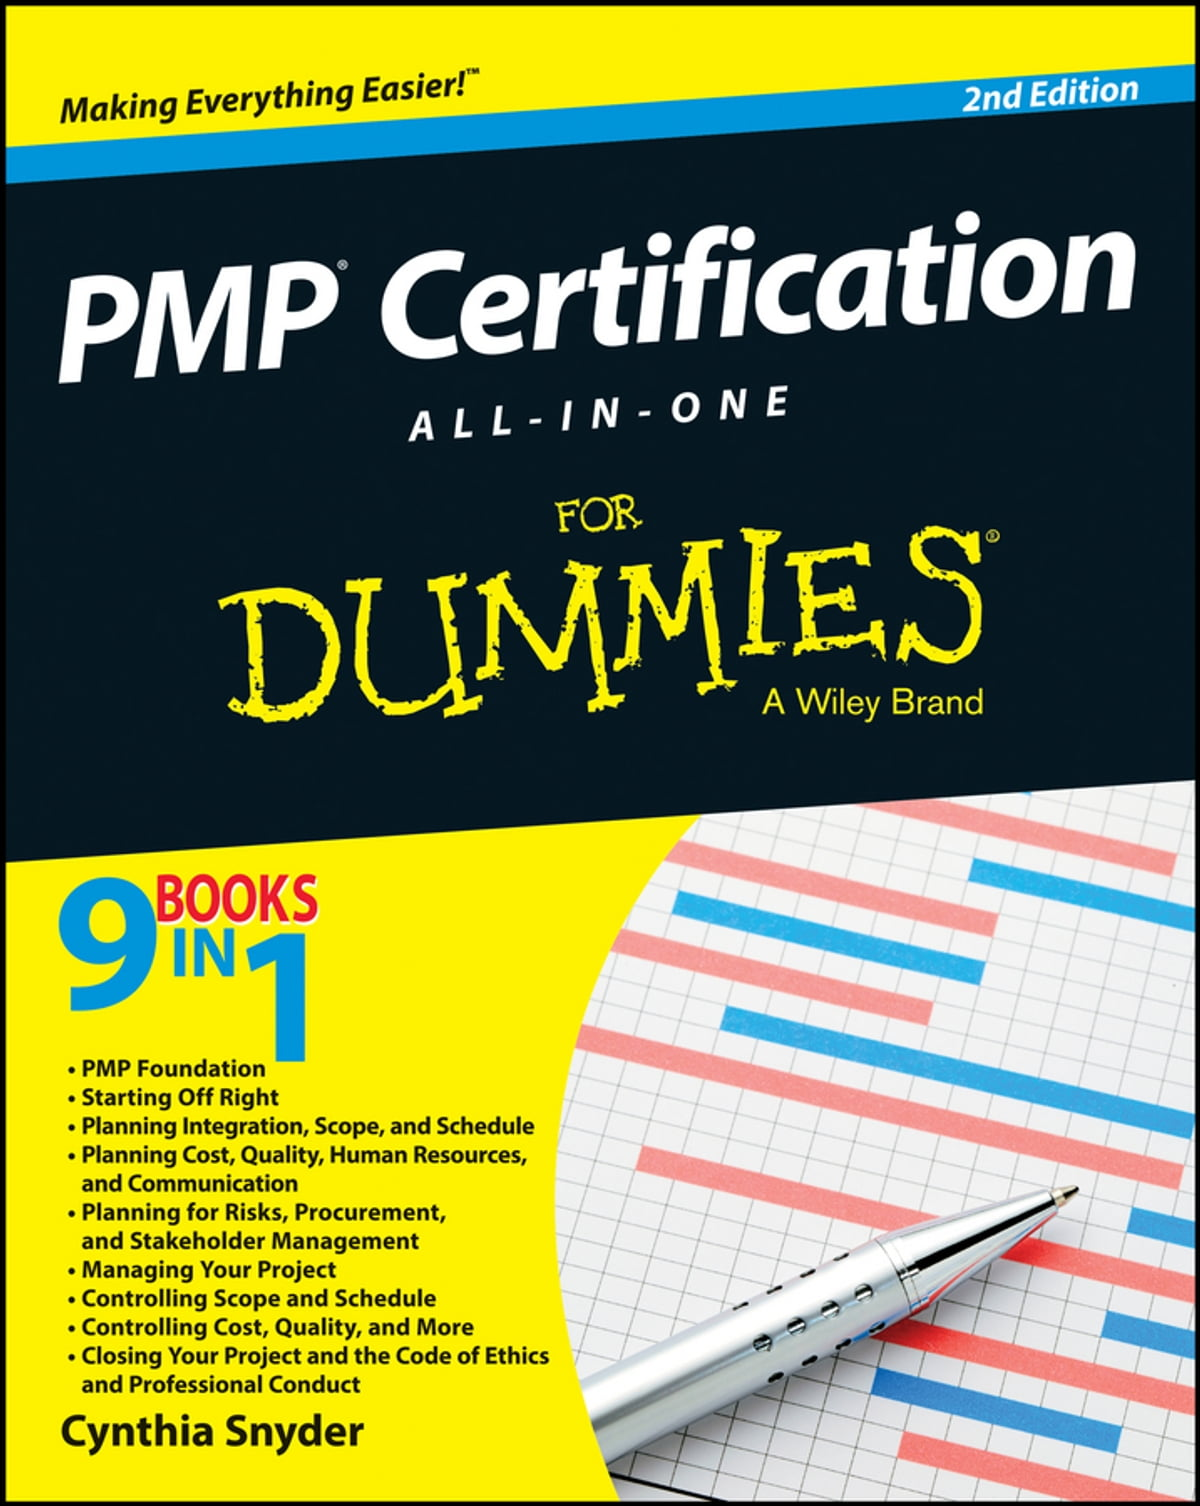 Pmp certification all in one for dummies ebook by cynthia snyder pmp certification all in one for dummies ebook by cynthia snyder stackpole 9781118612446 rakuten kobo 1betcityfo Gallery